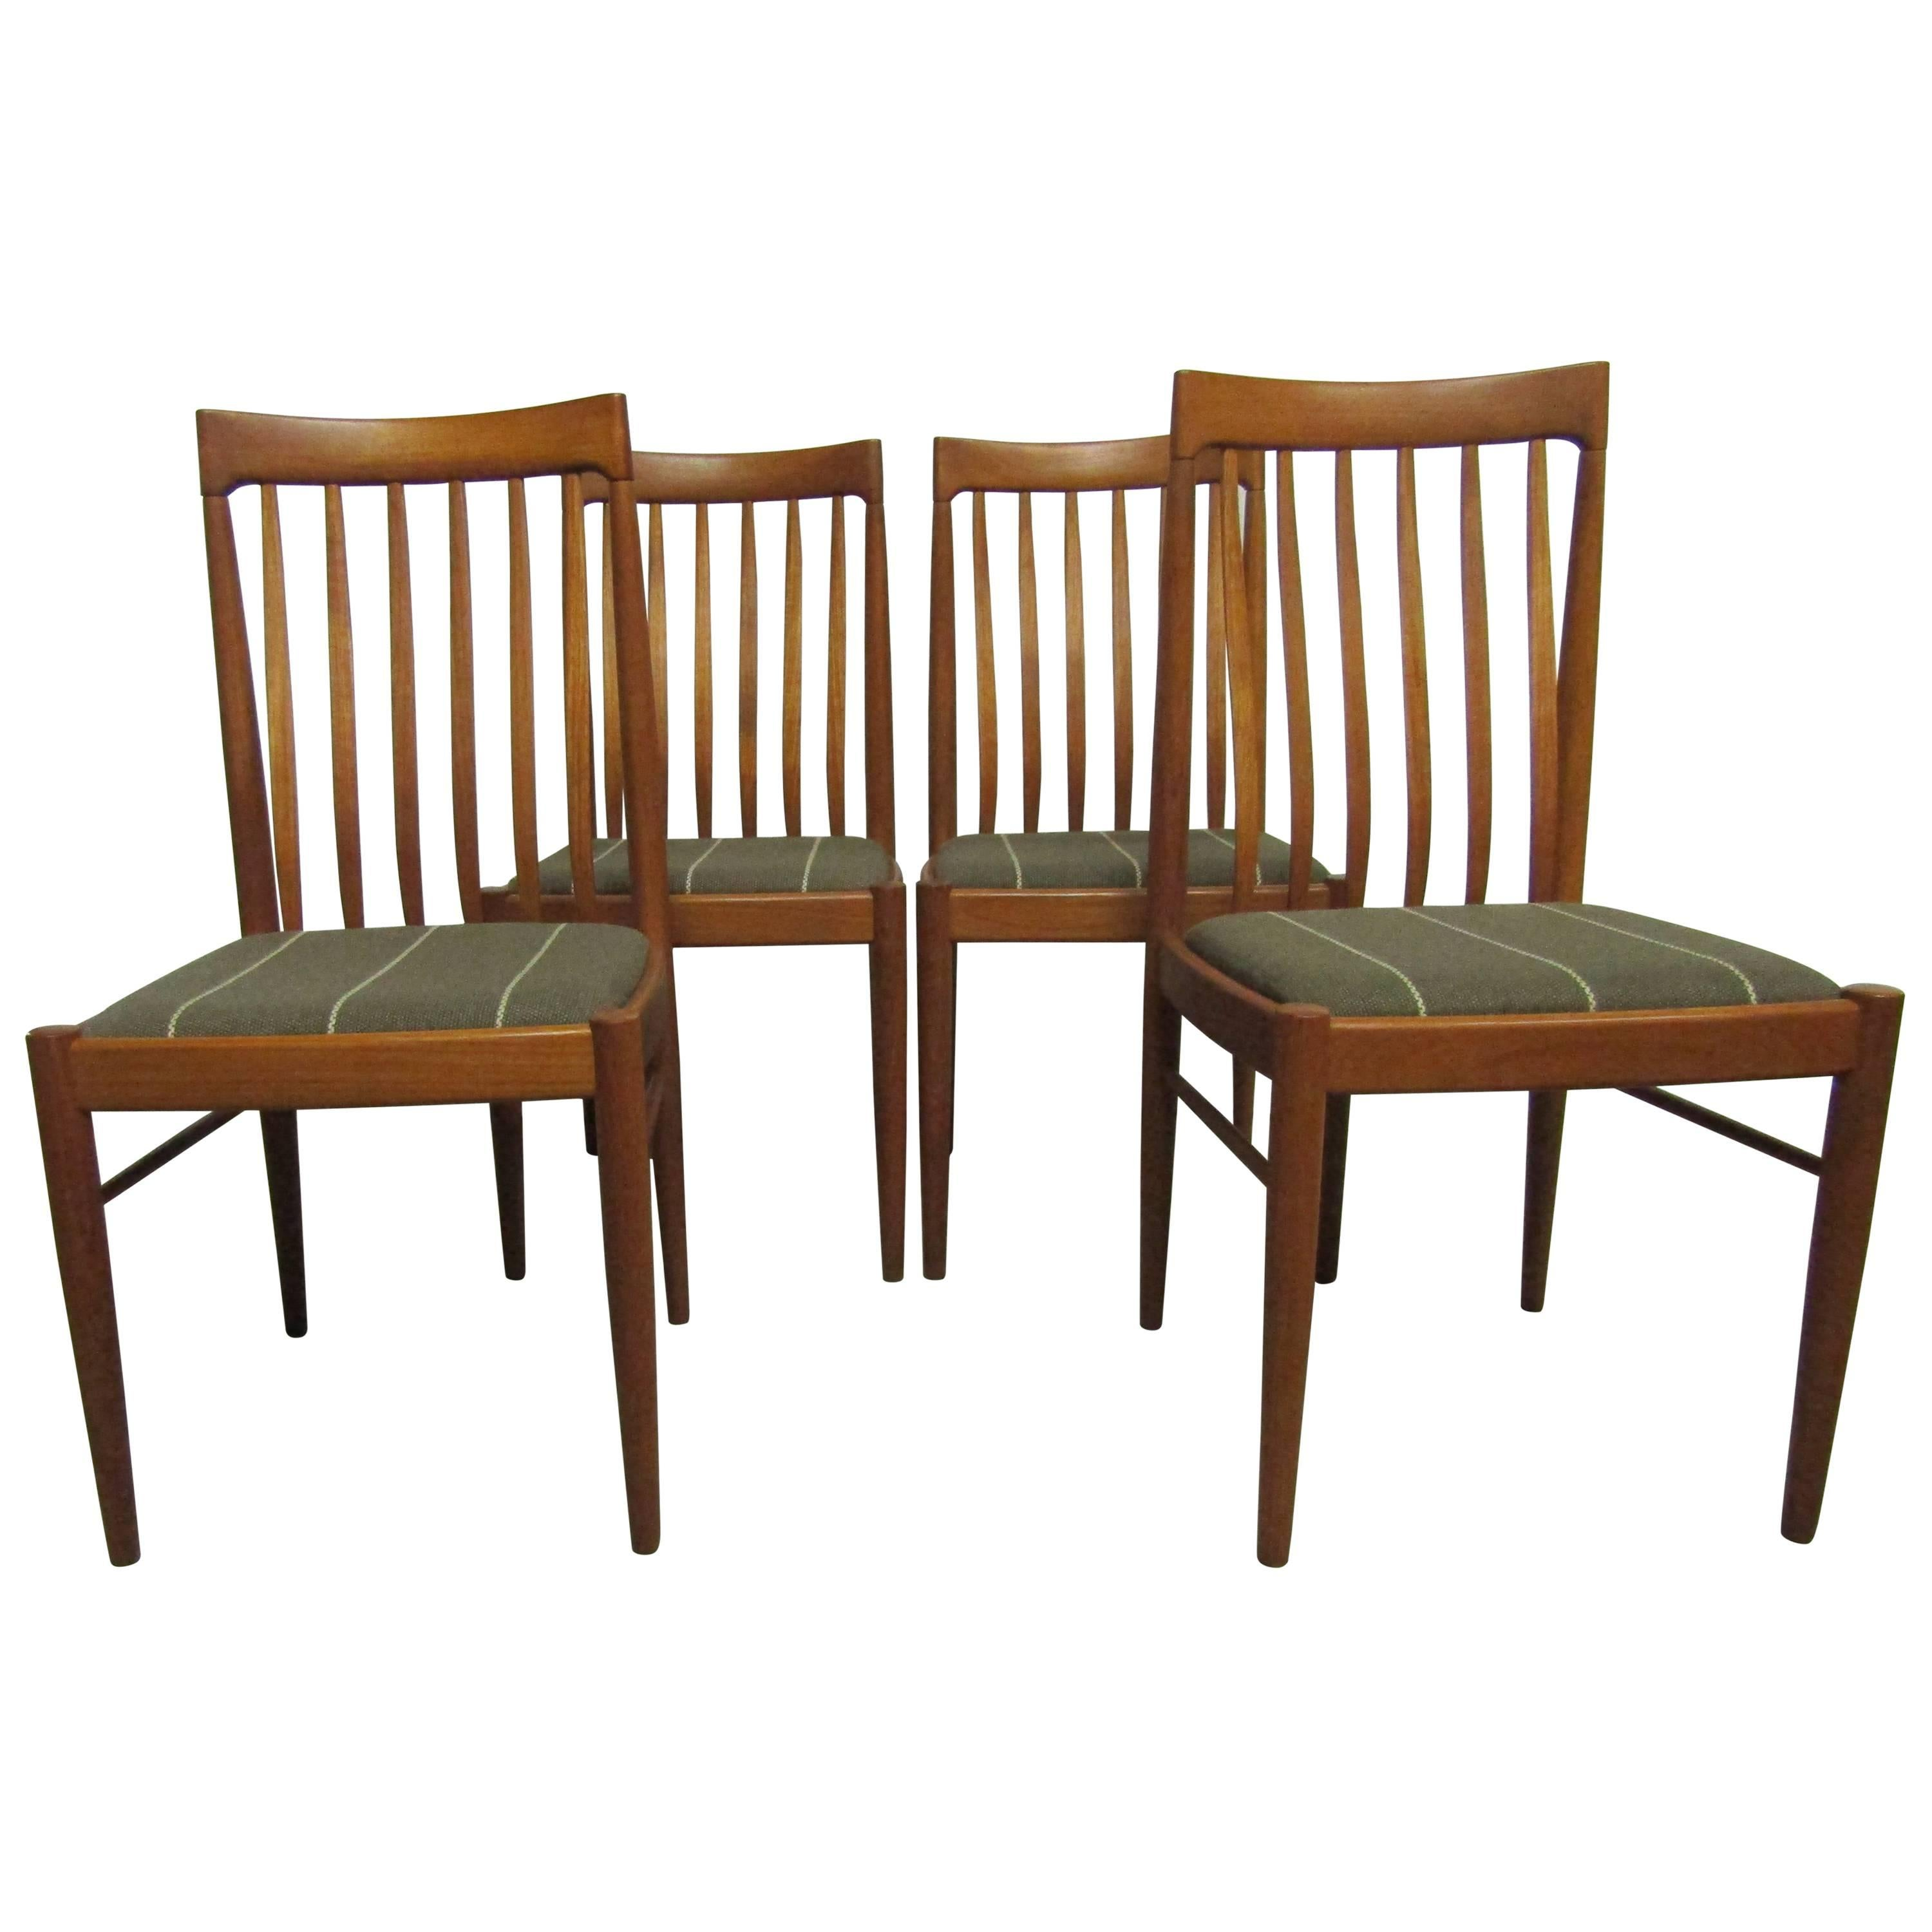 Genial Set Of Four Exquisite Teak Dining Chairs, H.W. Klein For Bramin Mobler,  Denmark